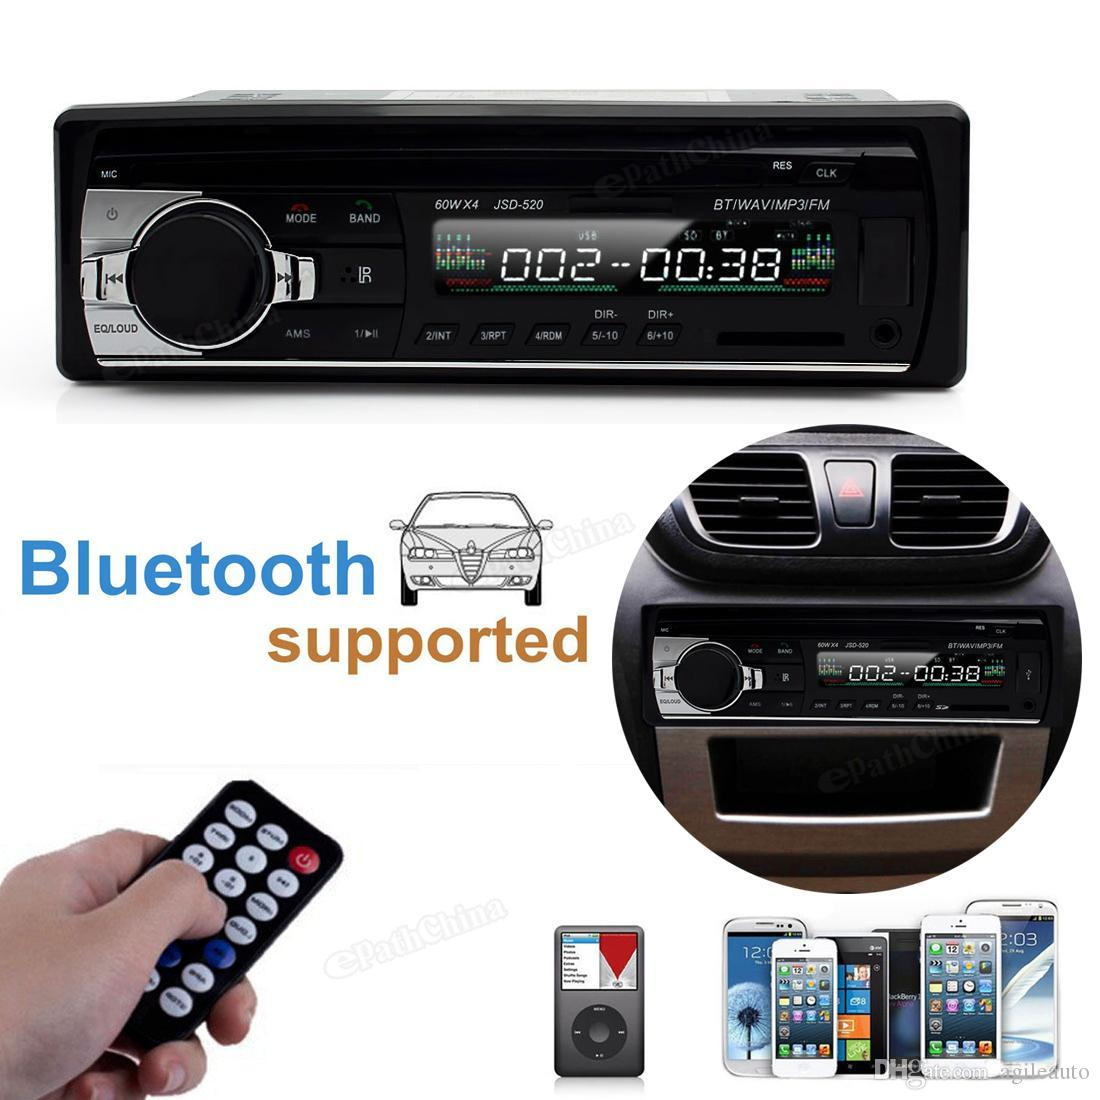 Digital Bluetooth Hands-free Car Stereo Audio MP3 Player USB SD FM with In Dash Slot CEC_815